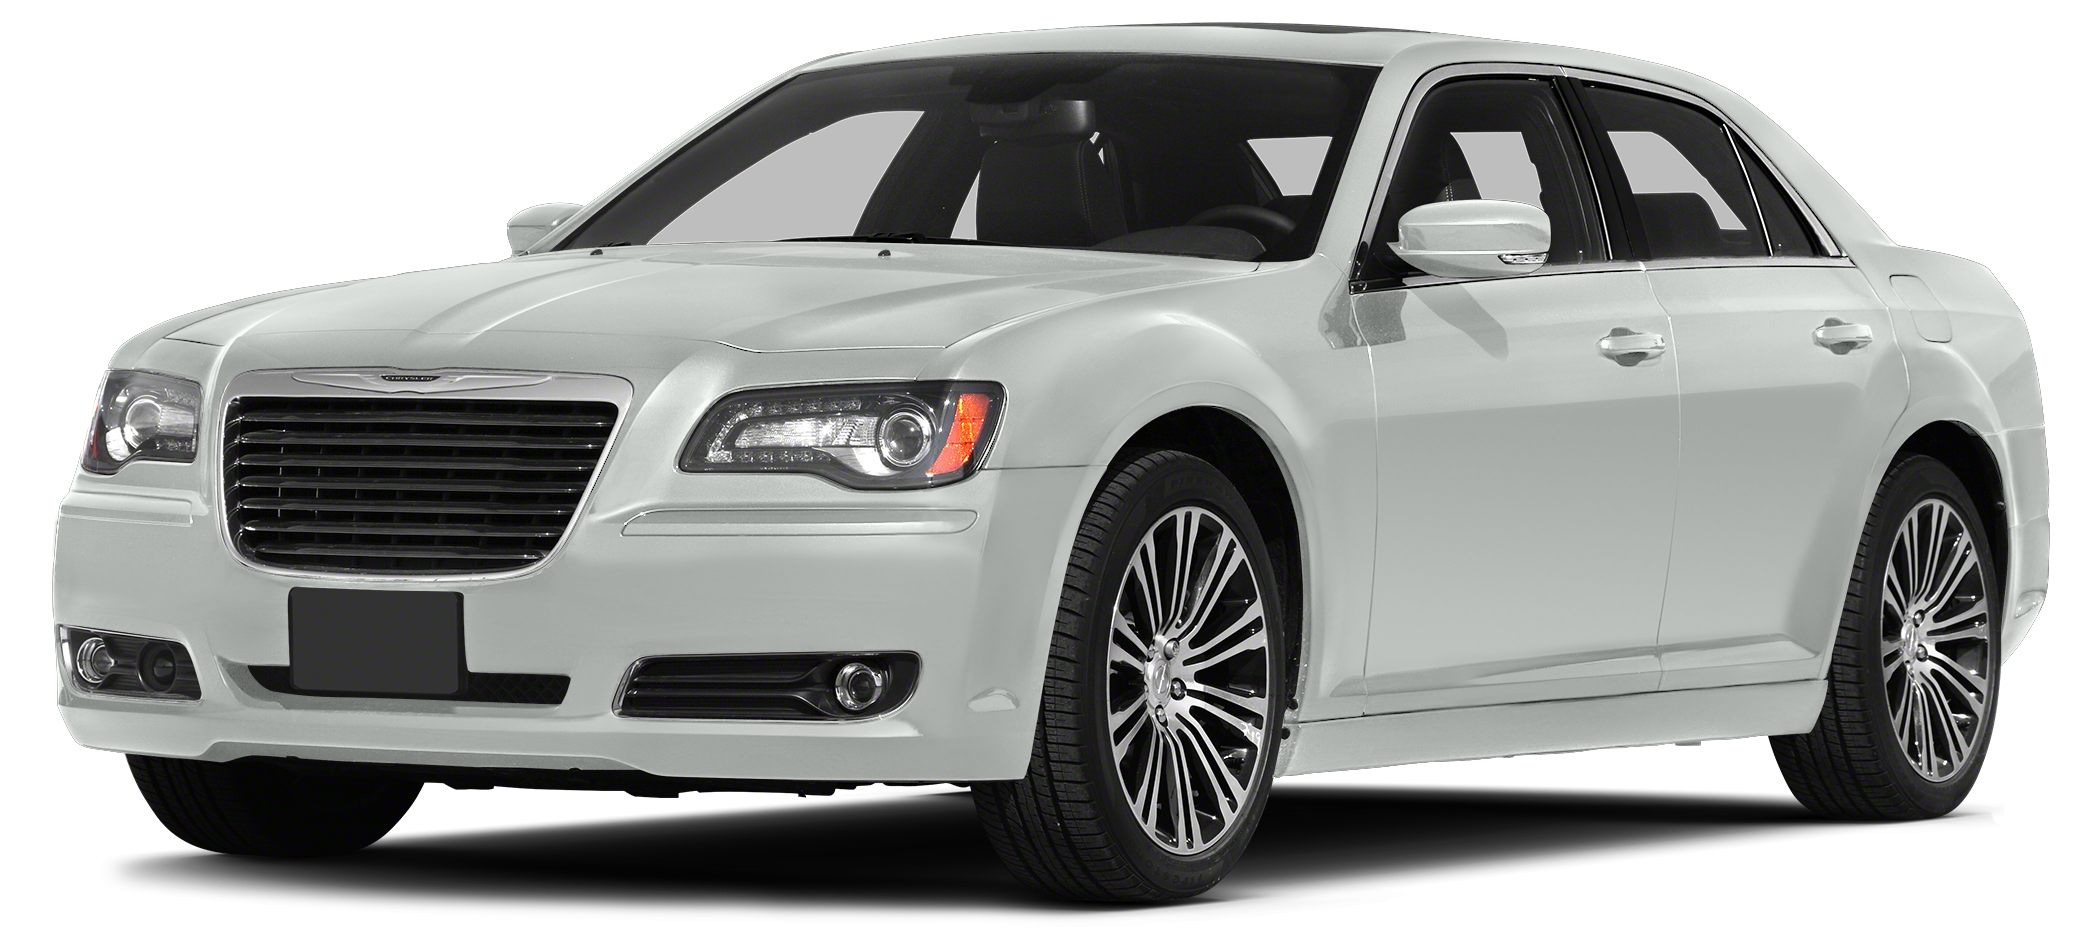 2014 Chrysler 300 S 300 S 6 cyl 36L DOHC 8-Speed Automatic RWD Bright White Clearcoat and Bl